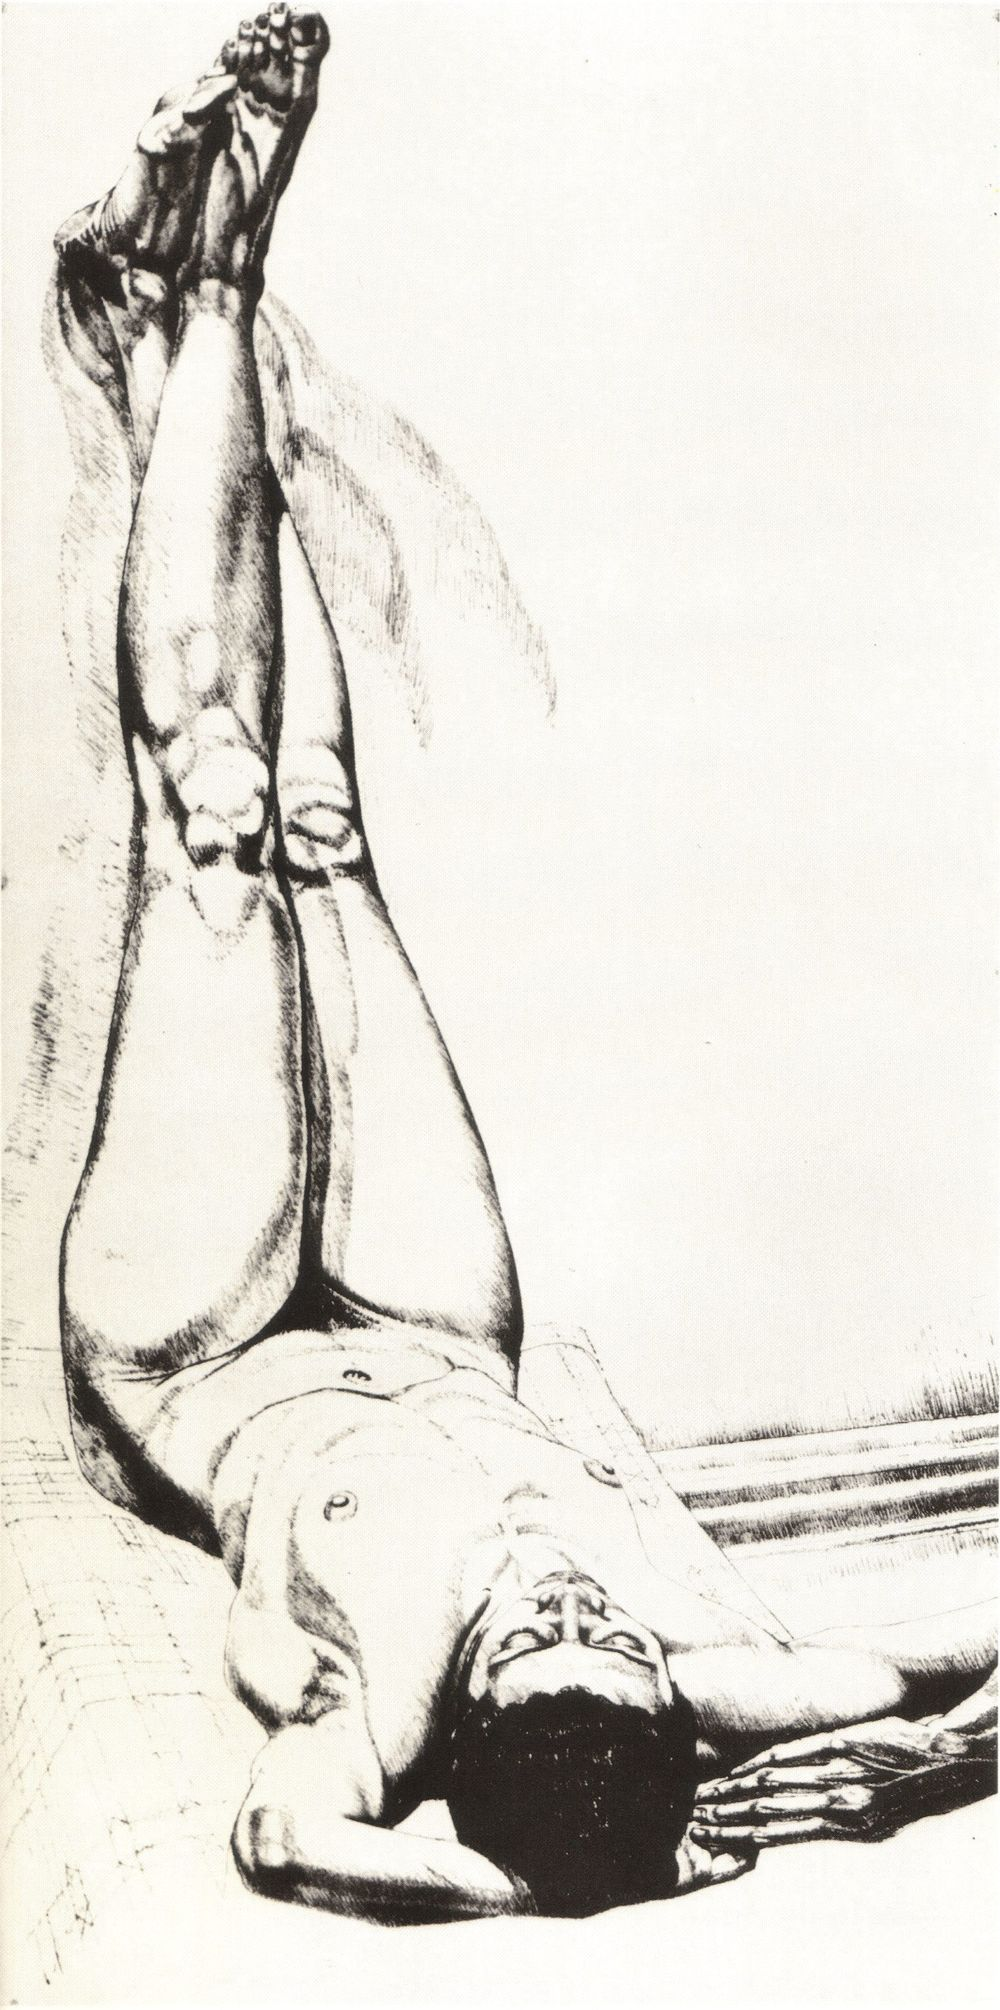 1976, Female Nude with Legs Up, Lithograph, 28.75x14.25, 1976.jpg